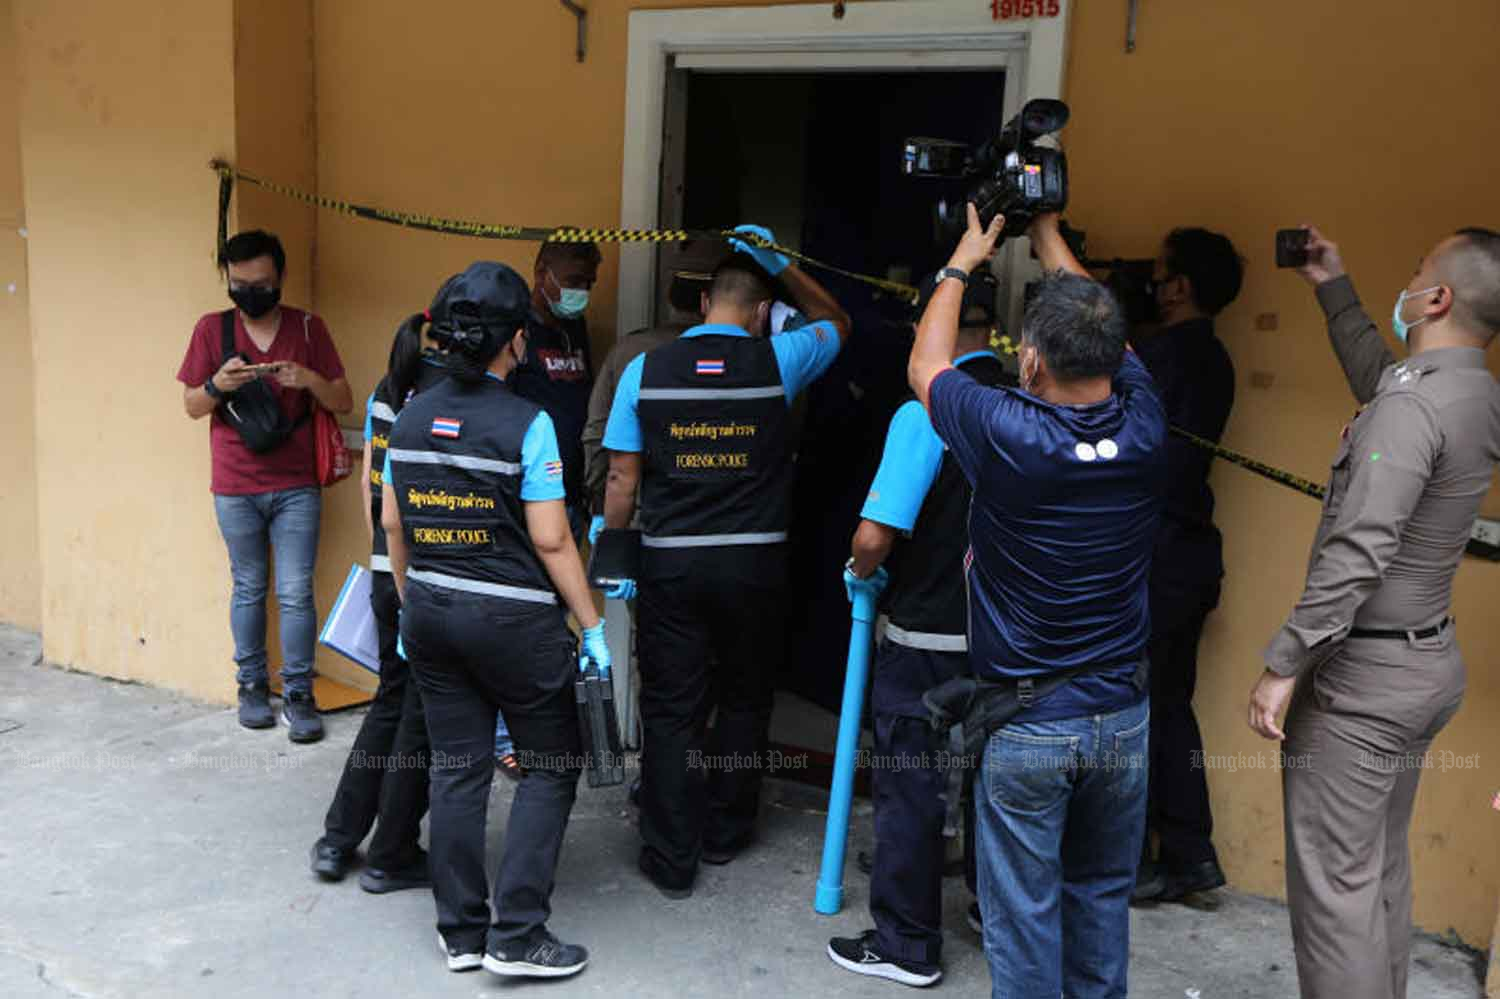 Forensic police arrive to collect evidence at the alleged gambling den in Yannawa district, Bangkok, on Tuesday. (Photo: Wichan Charoenkiatpakul)